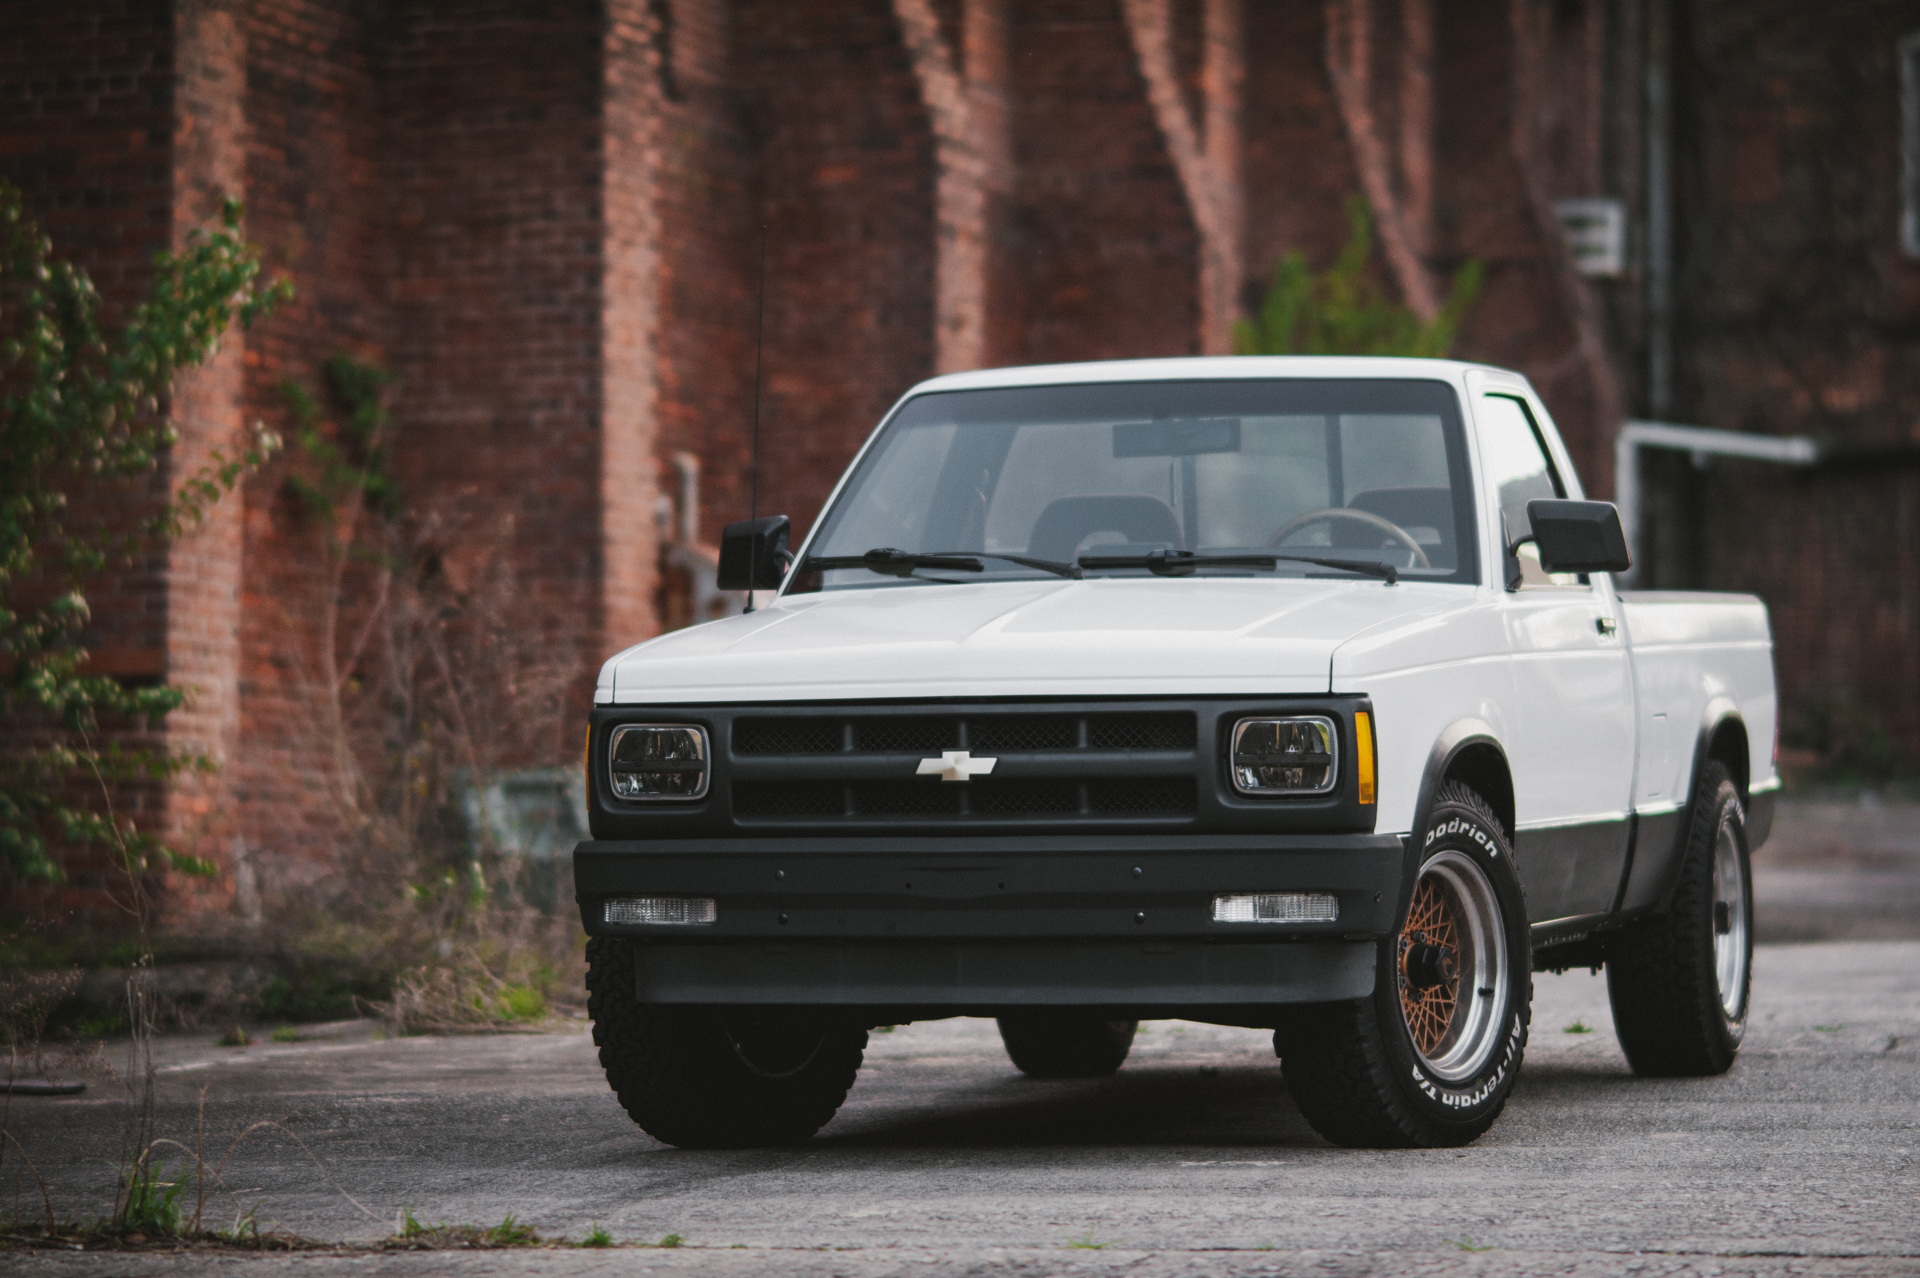 25 Years Later An Update On My 1992 Chevrolet S10 Andy Carter Photography